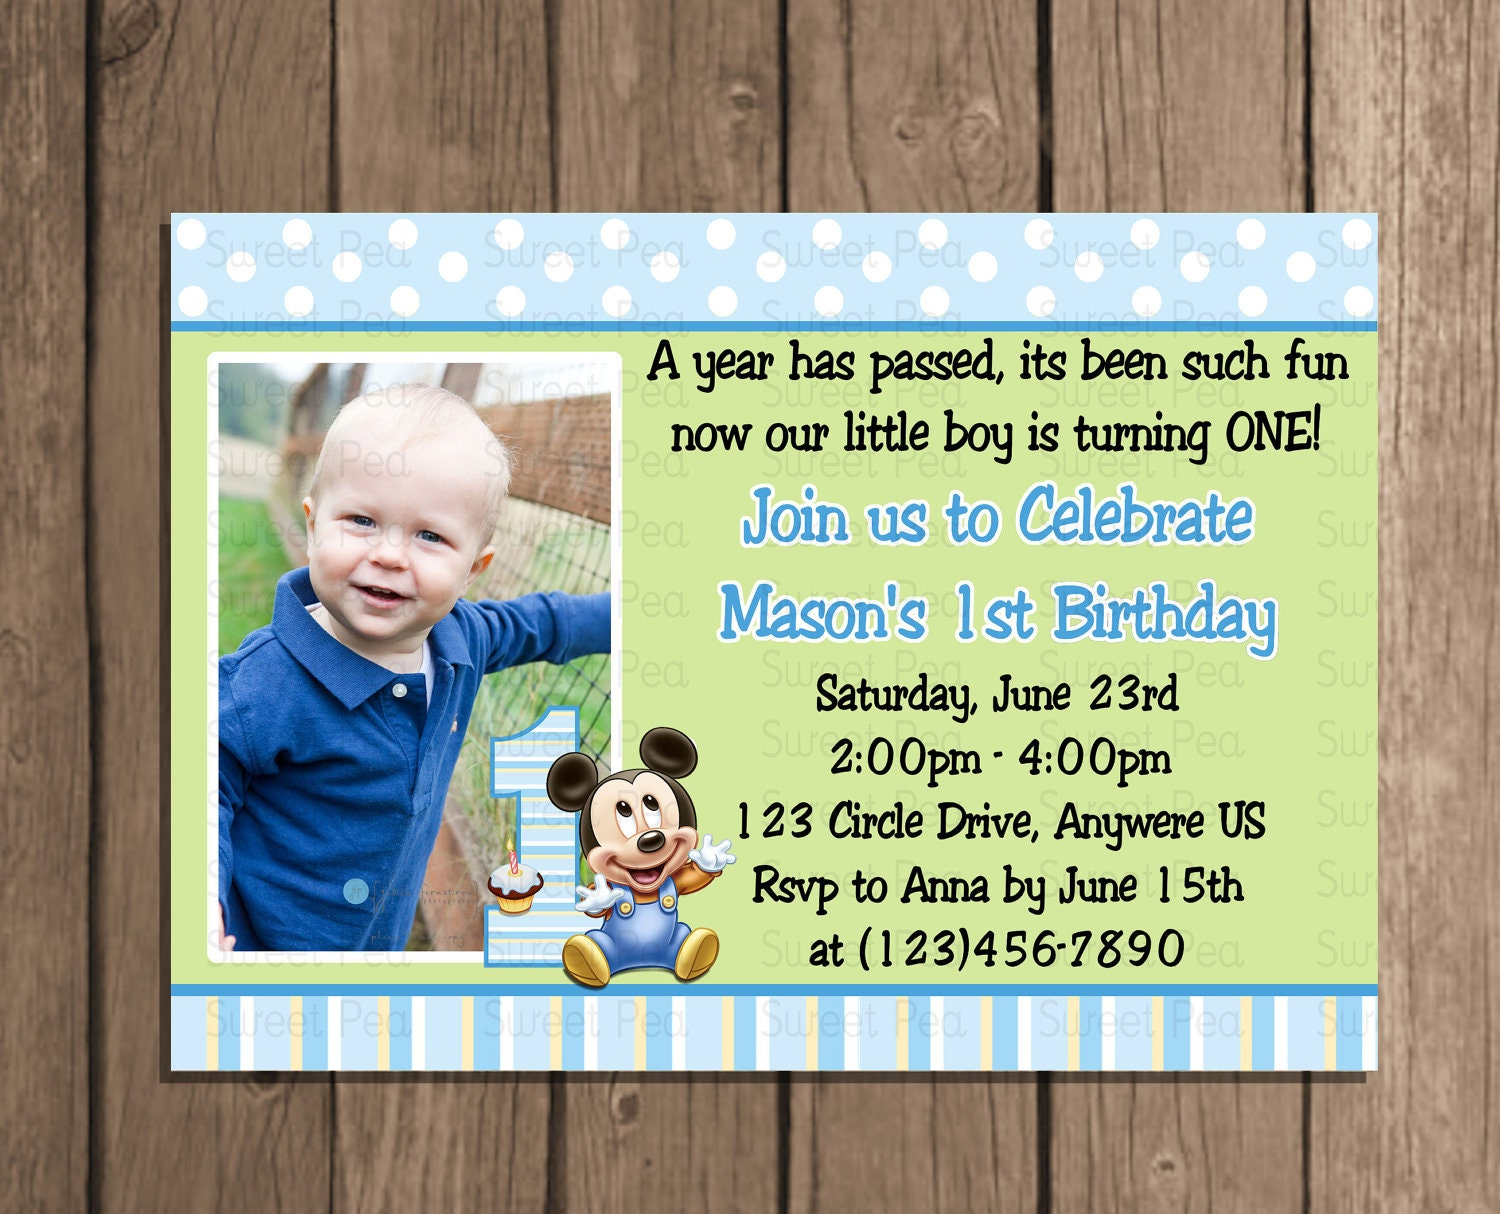 Birthday invitation card for baby boy idealstalist birthday invitation card for baby boy stopboris Image collections